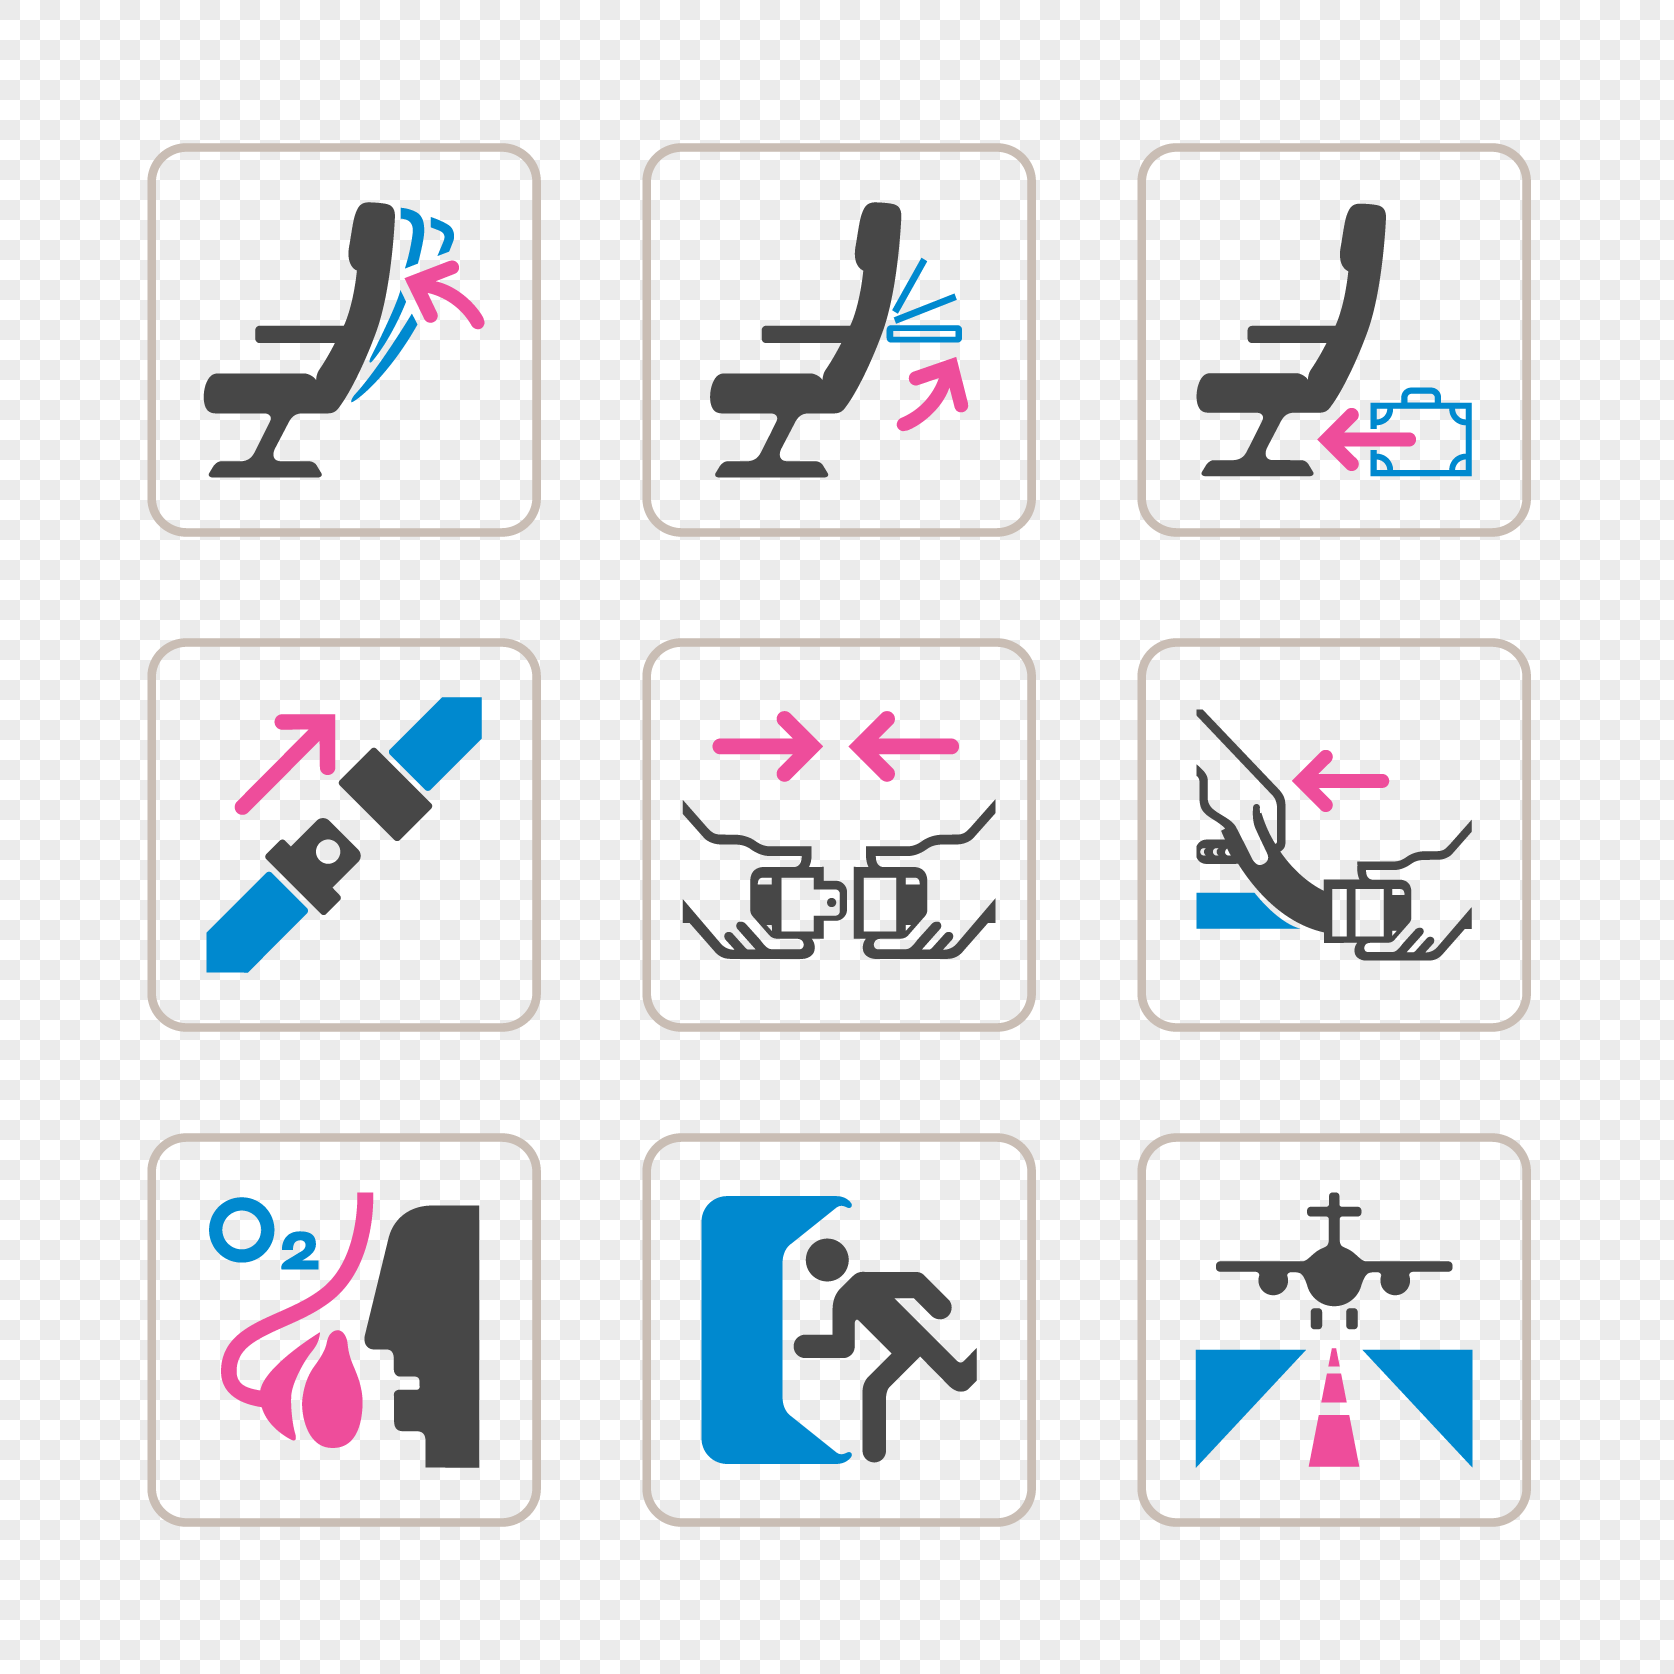 1674x1674 Vector Aviation Security Icon Png Image Picture Free Download